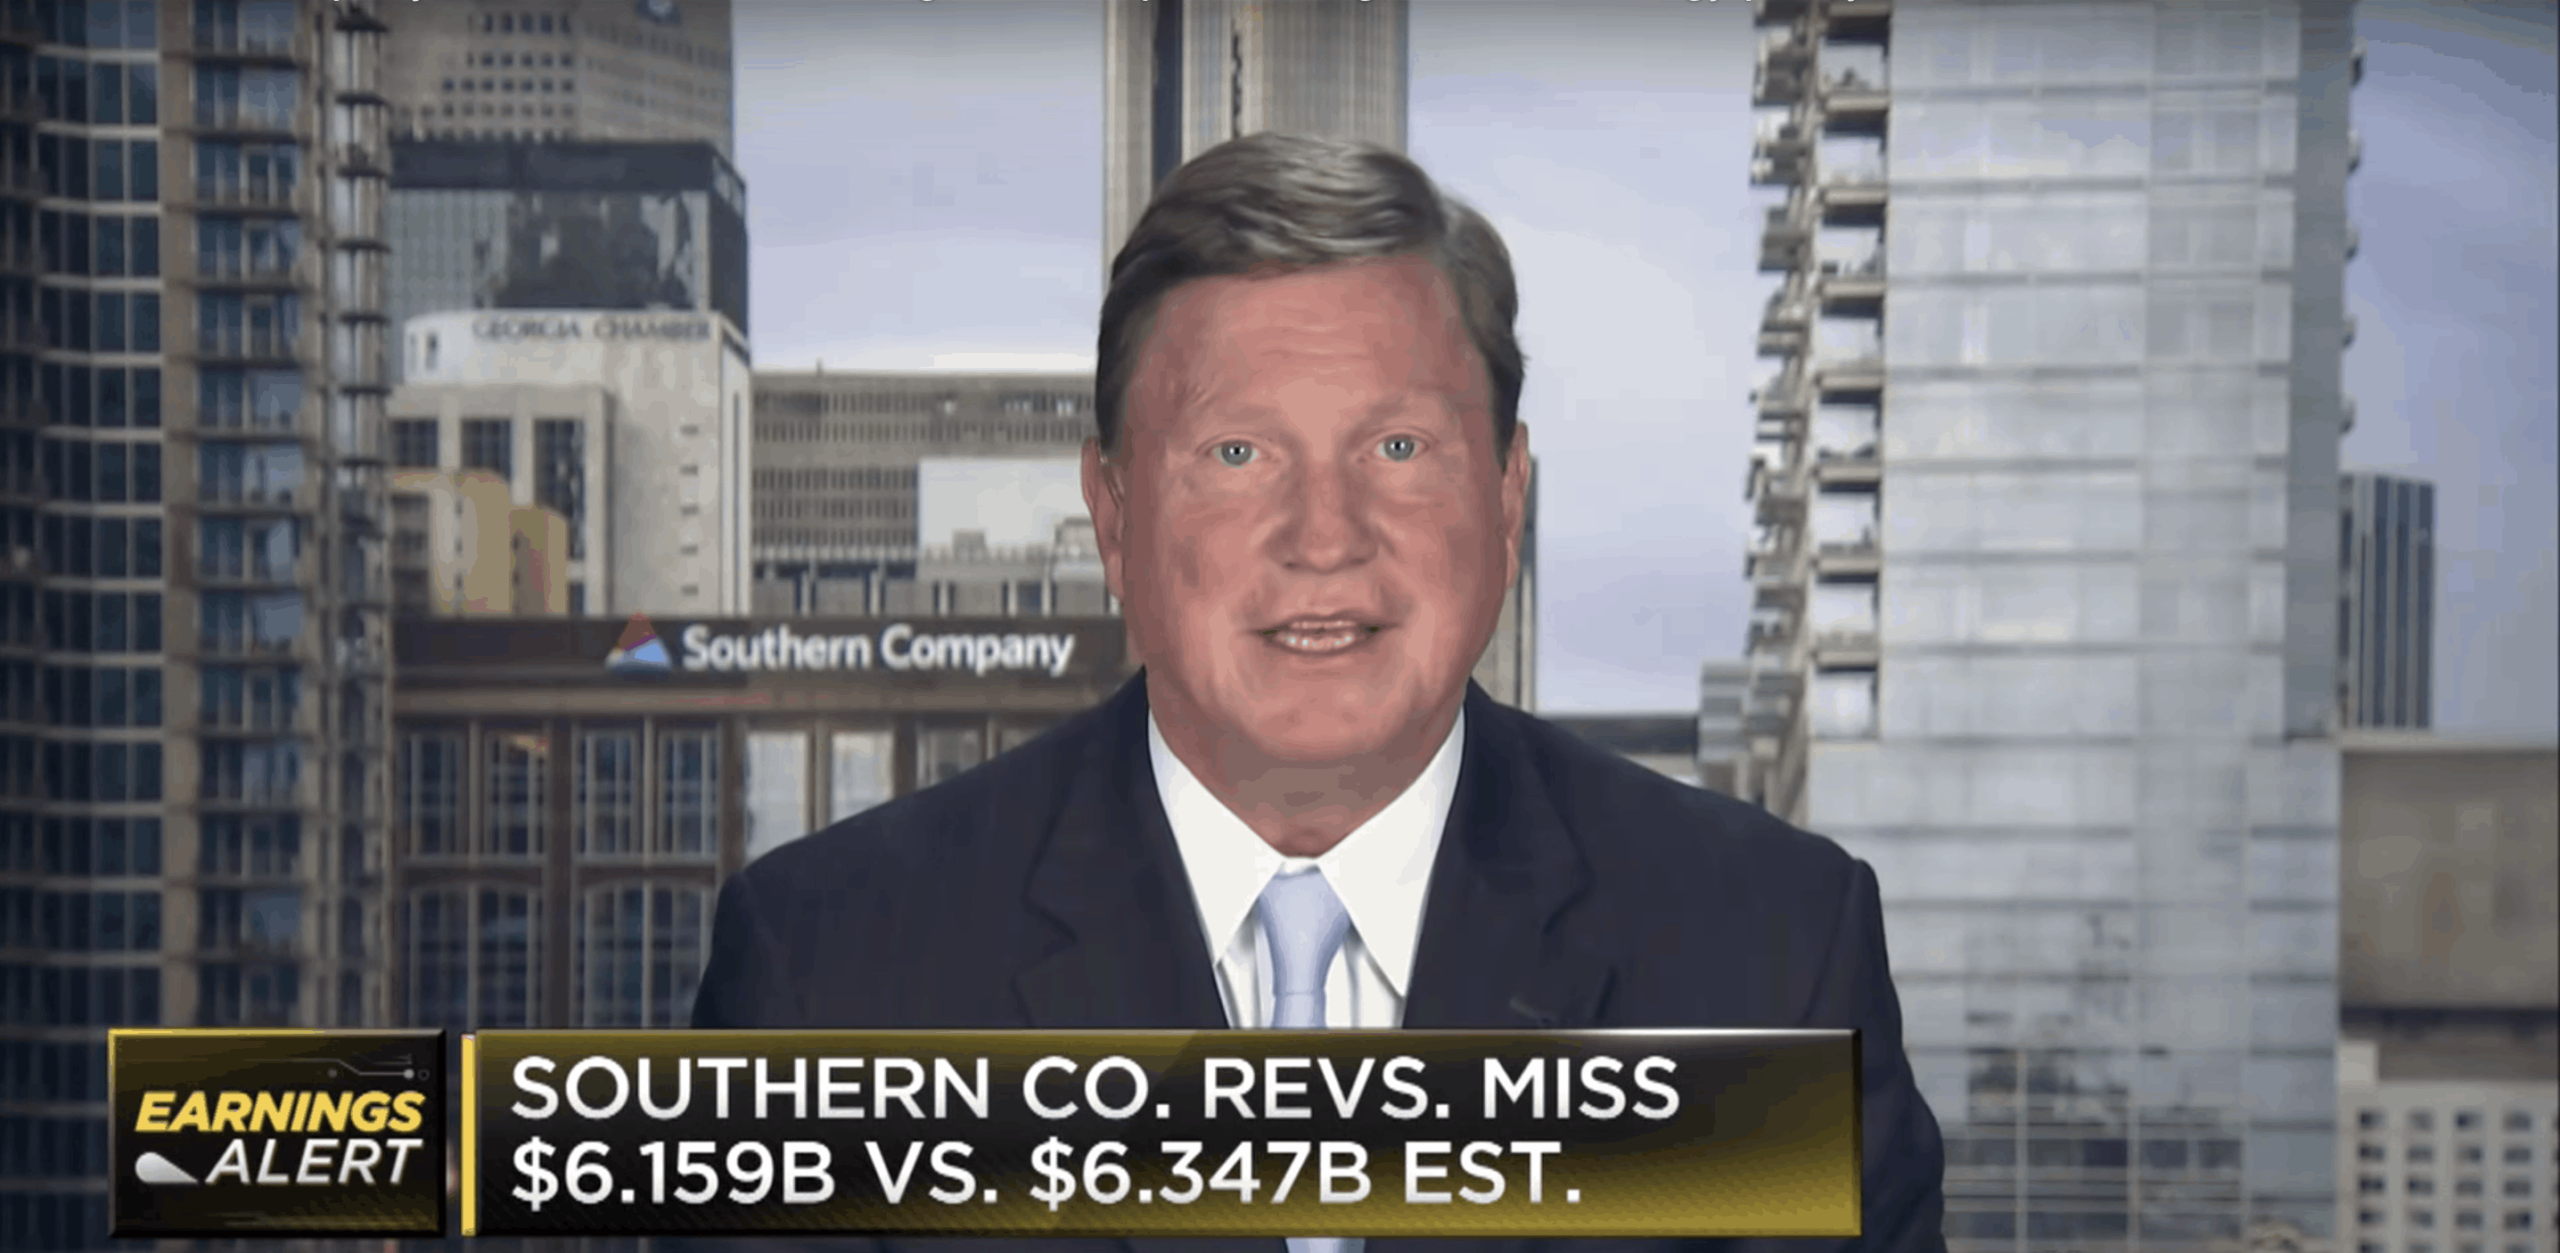 Southern Company CEO Tom Fanning on CNBC